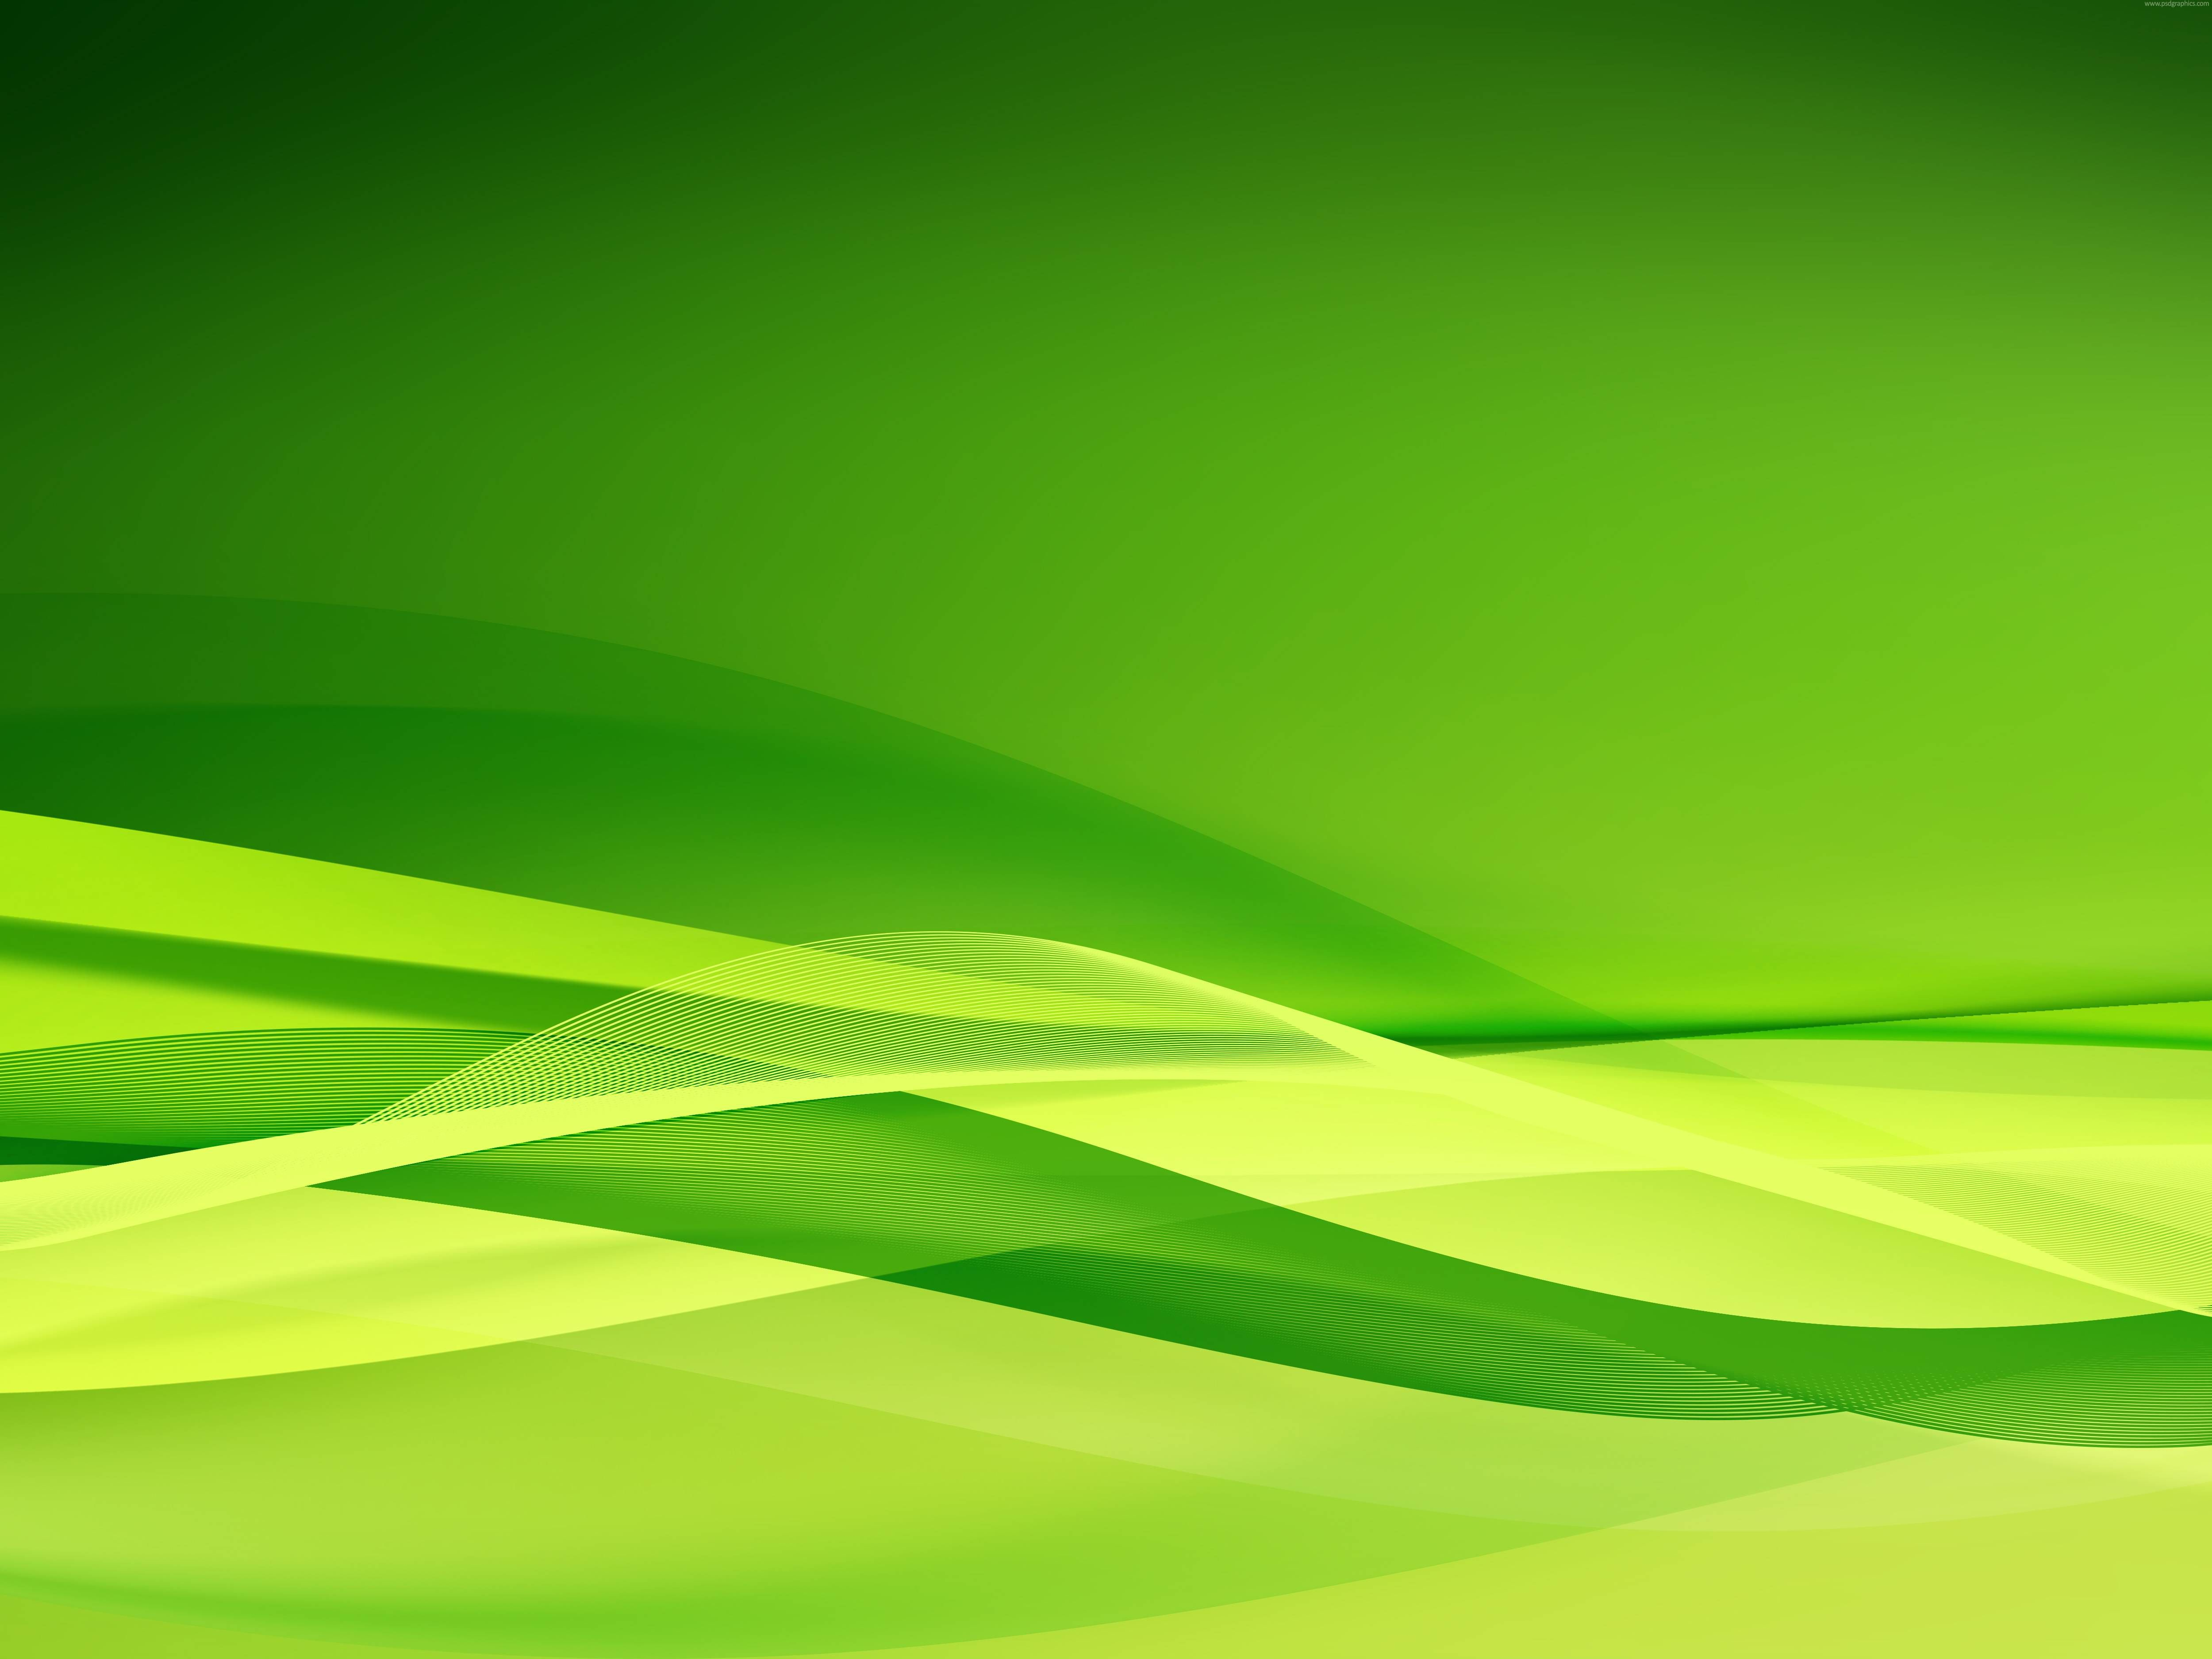 Green Wallpaper High Quality Green Backgrounds and ...